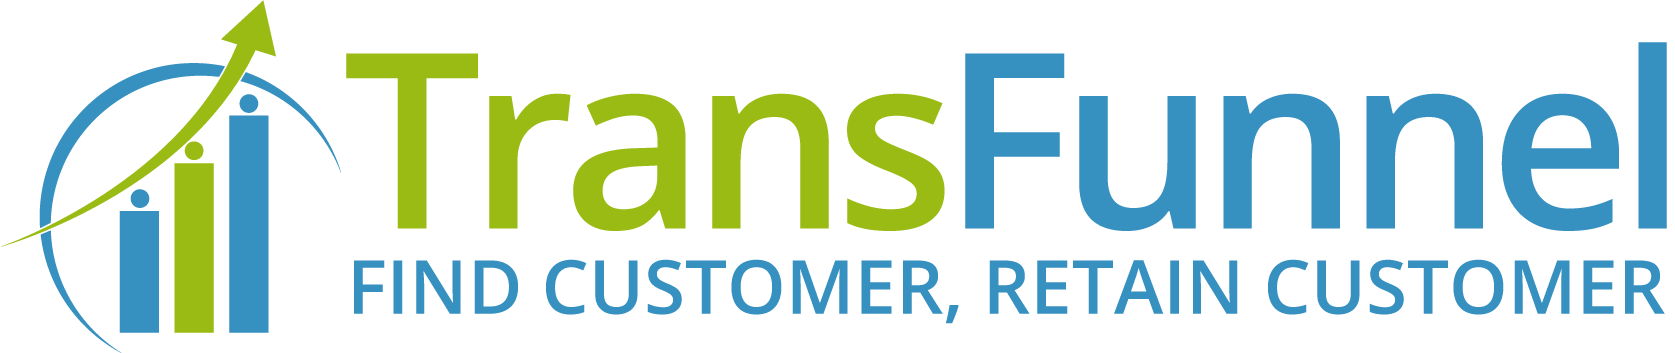 TransFunnel Consulting